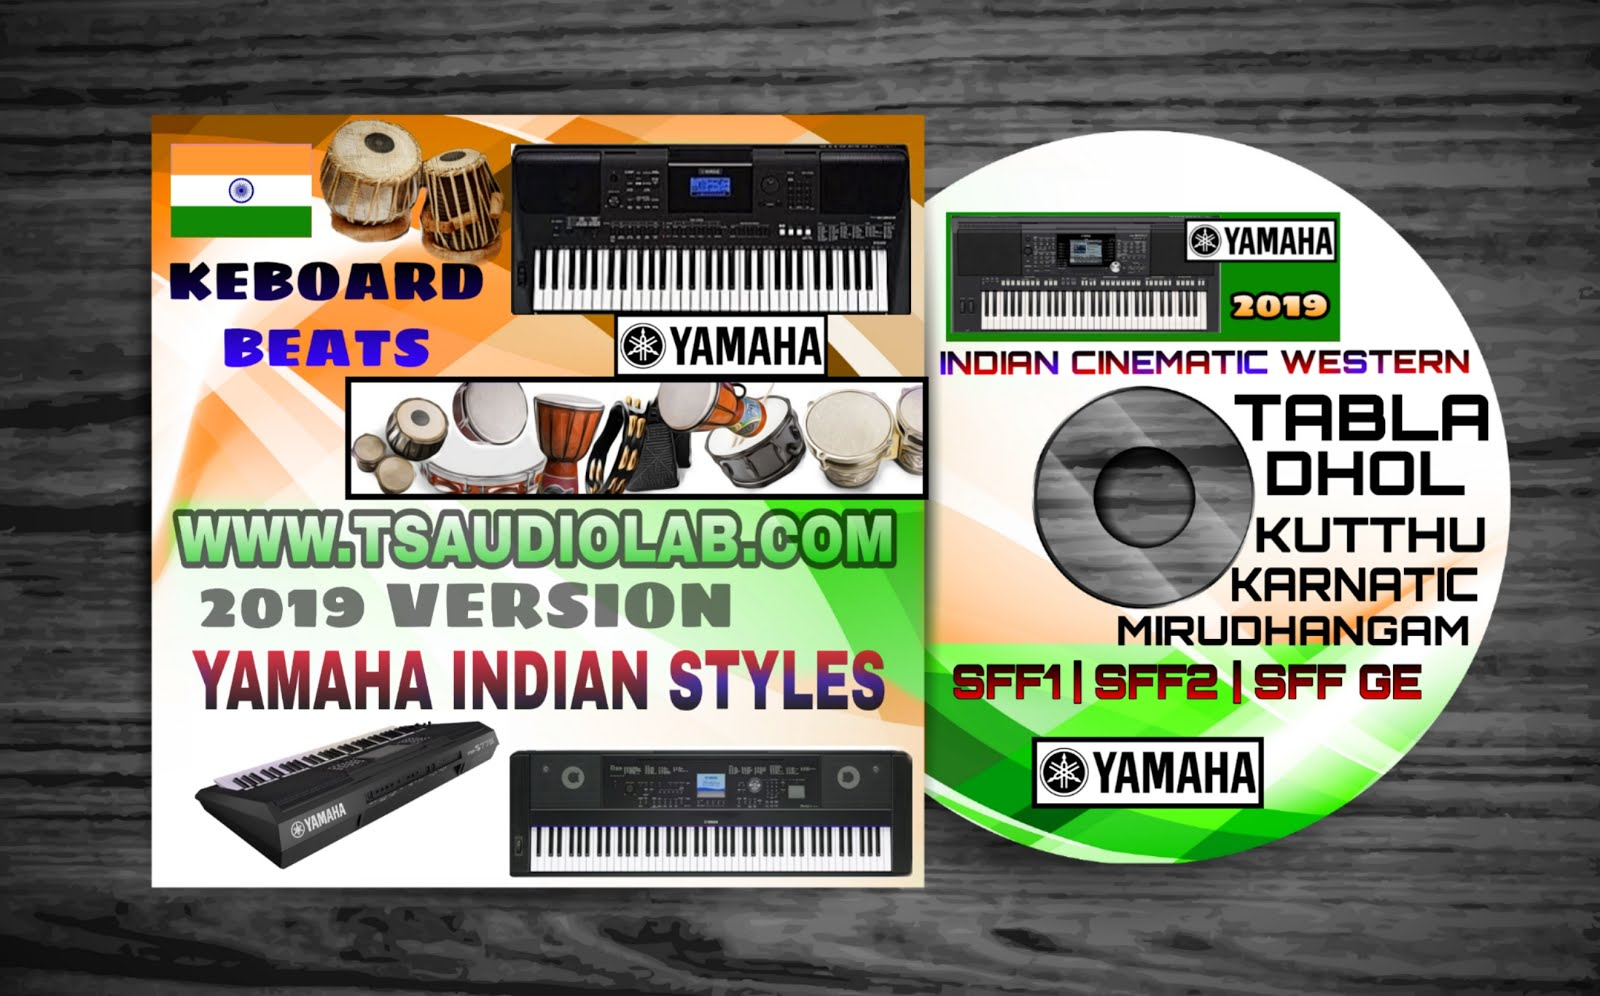 TS Audio Lab Yamaha Keyboard Styles Beats for Sinhala Tamil